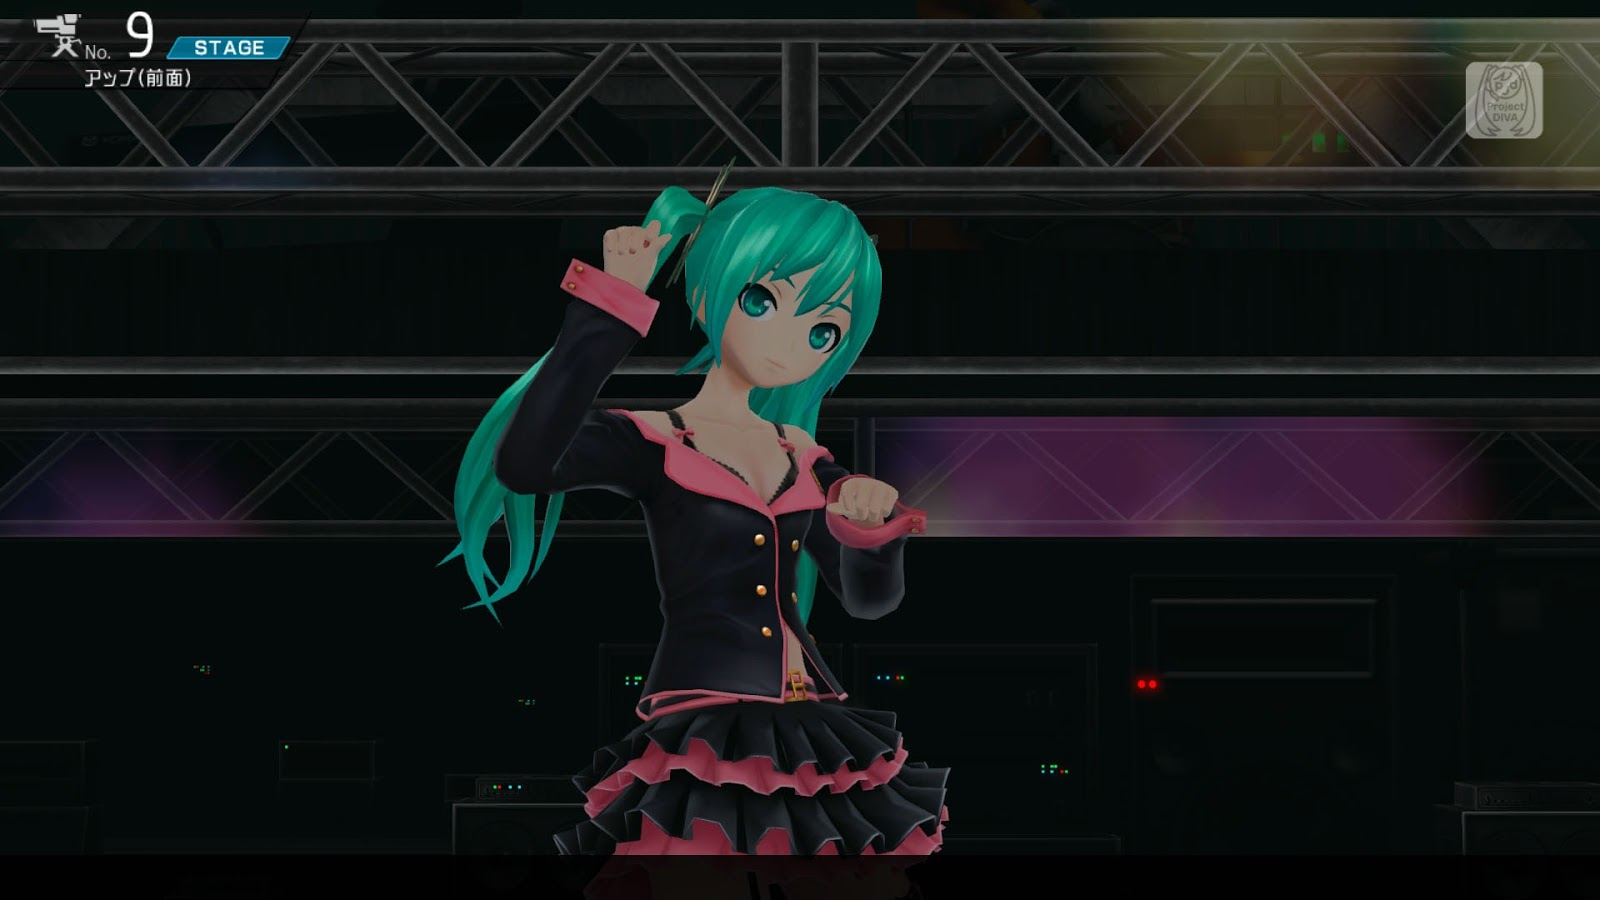 Hatsune Miku Project Diva New Screenshots